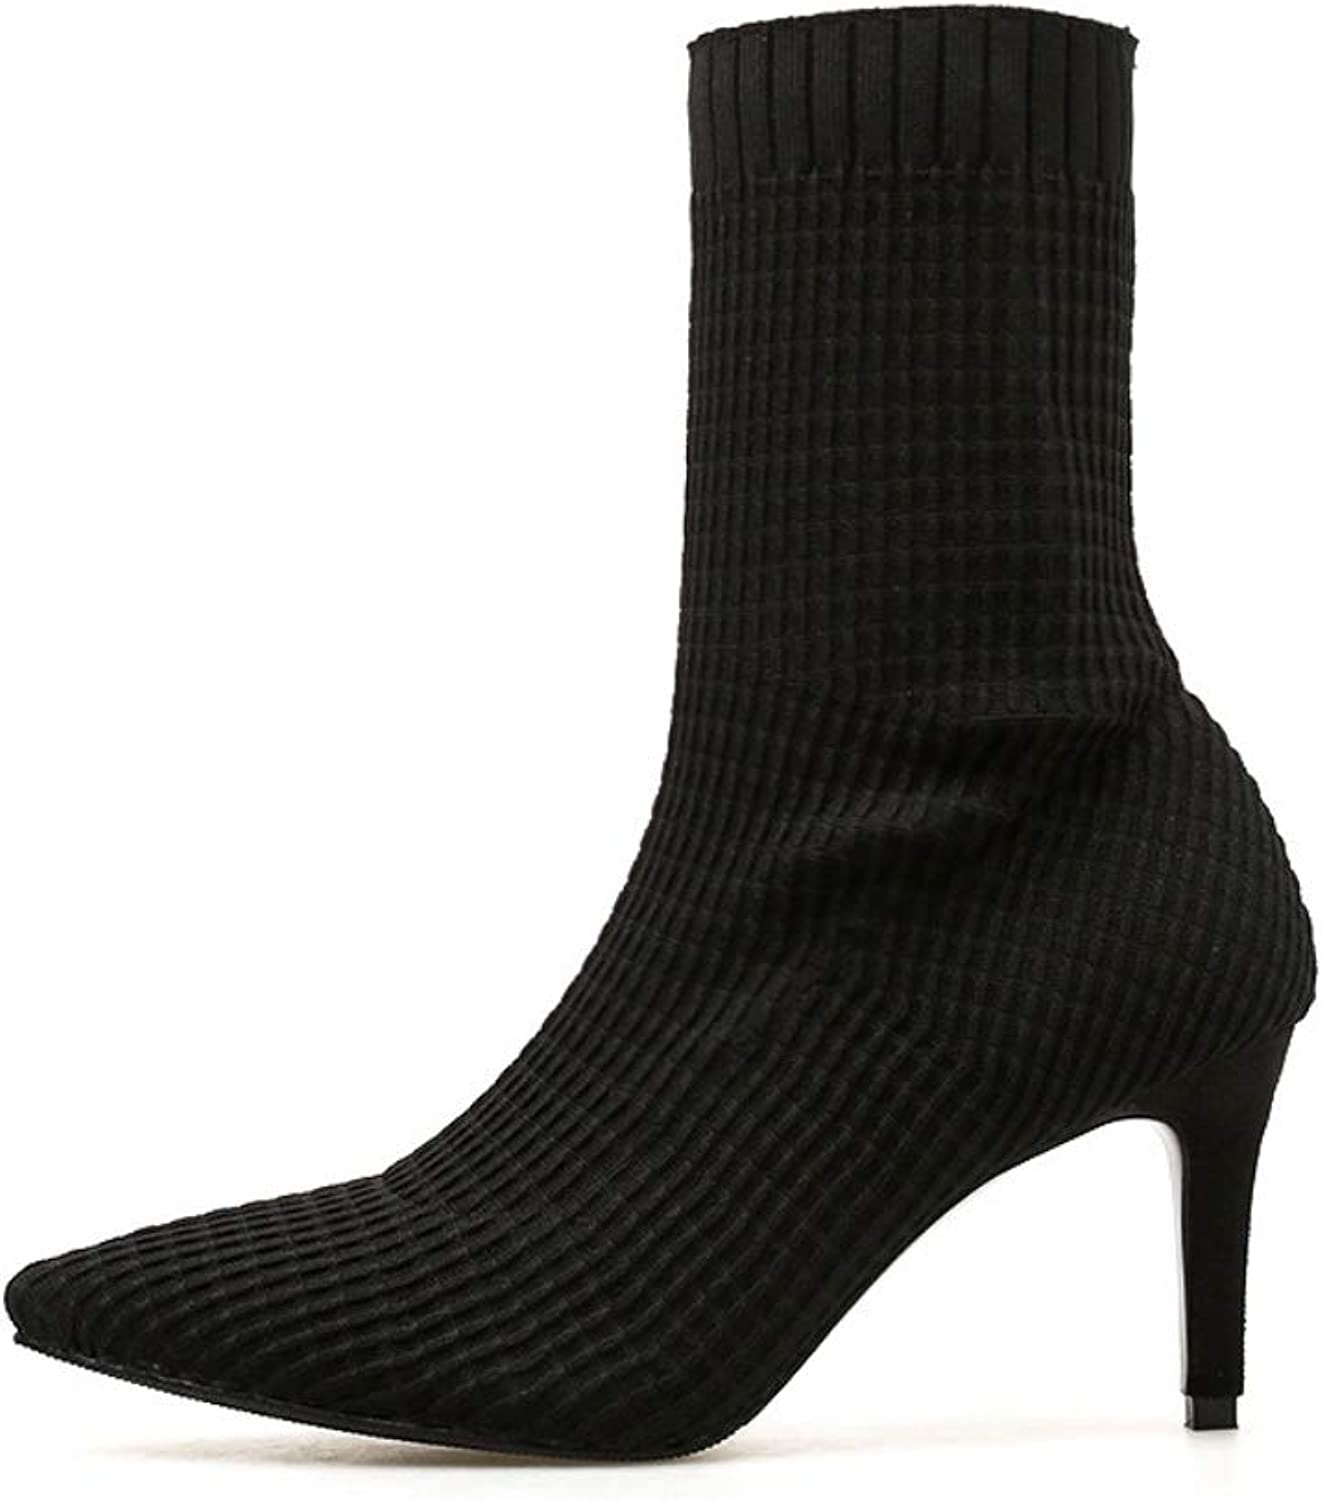 Ladies Women Knitted High Heel Ankle Boots Heel Boots with Stiletto Pointed Elastic Force Boots Ankle Comfortable shoes for Inside Outside